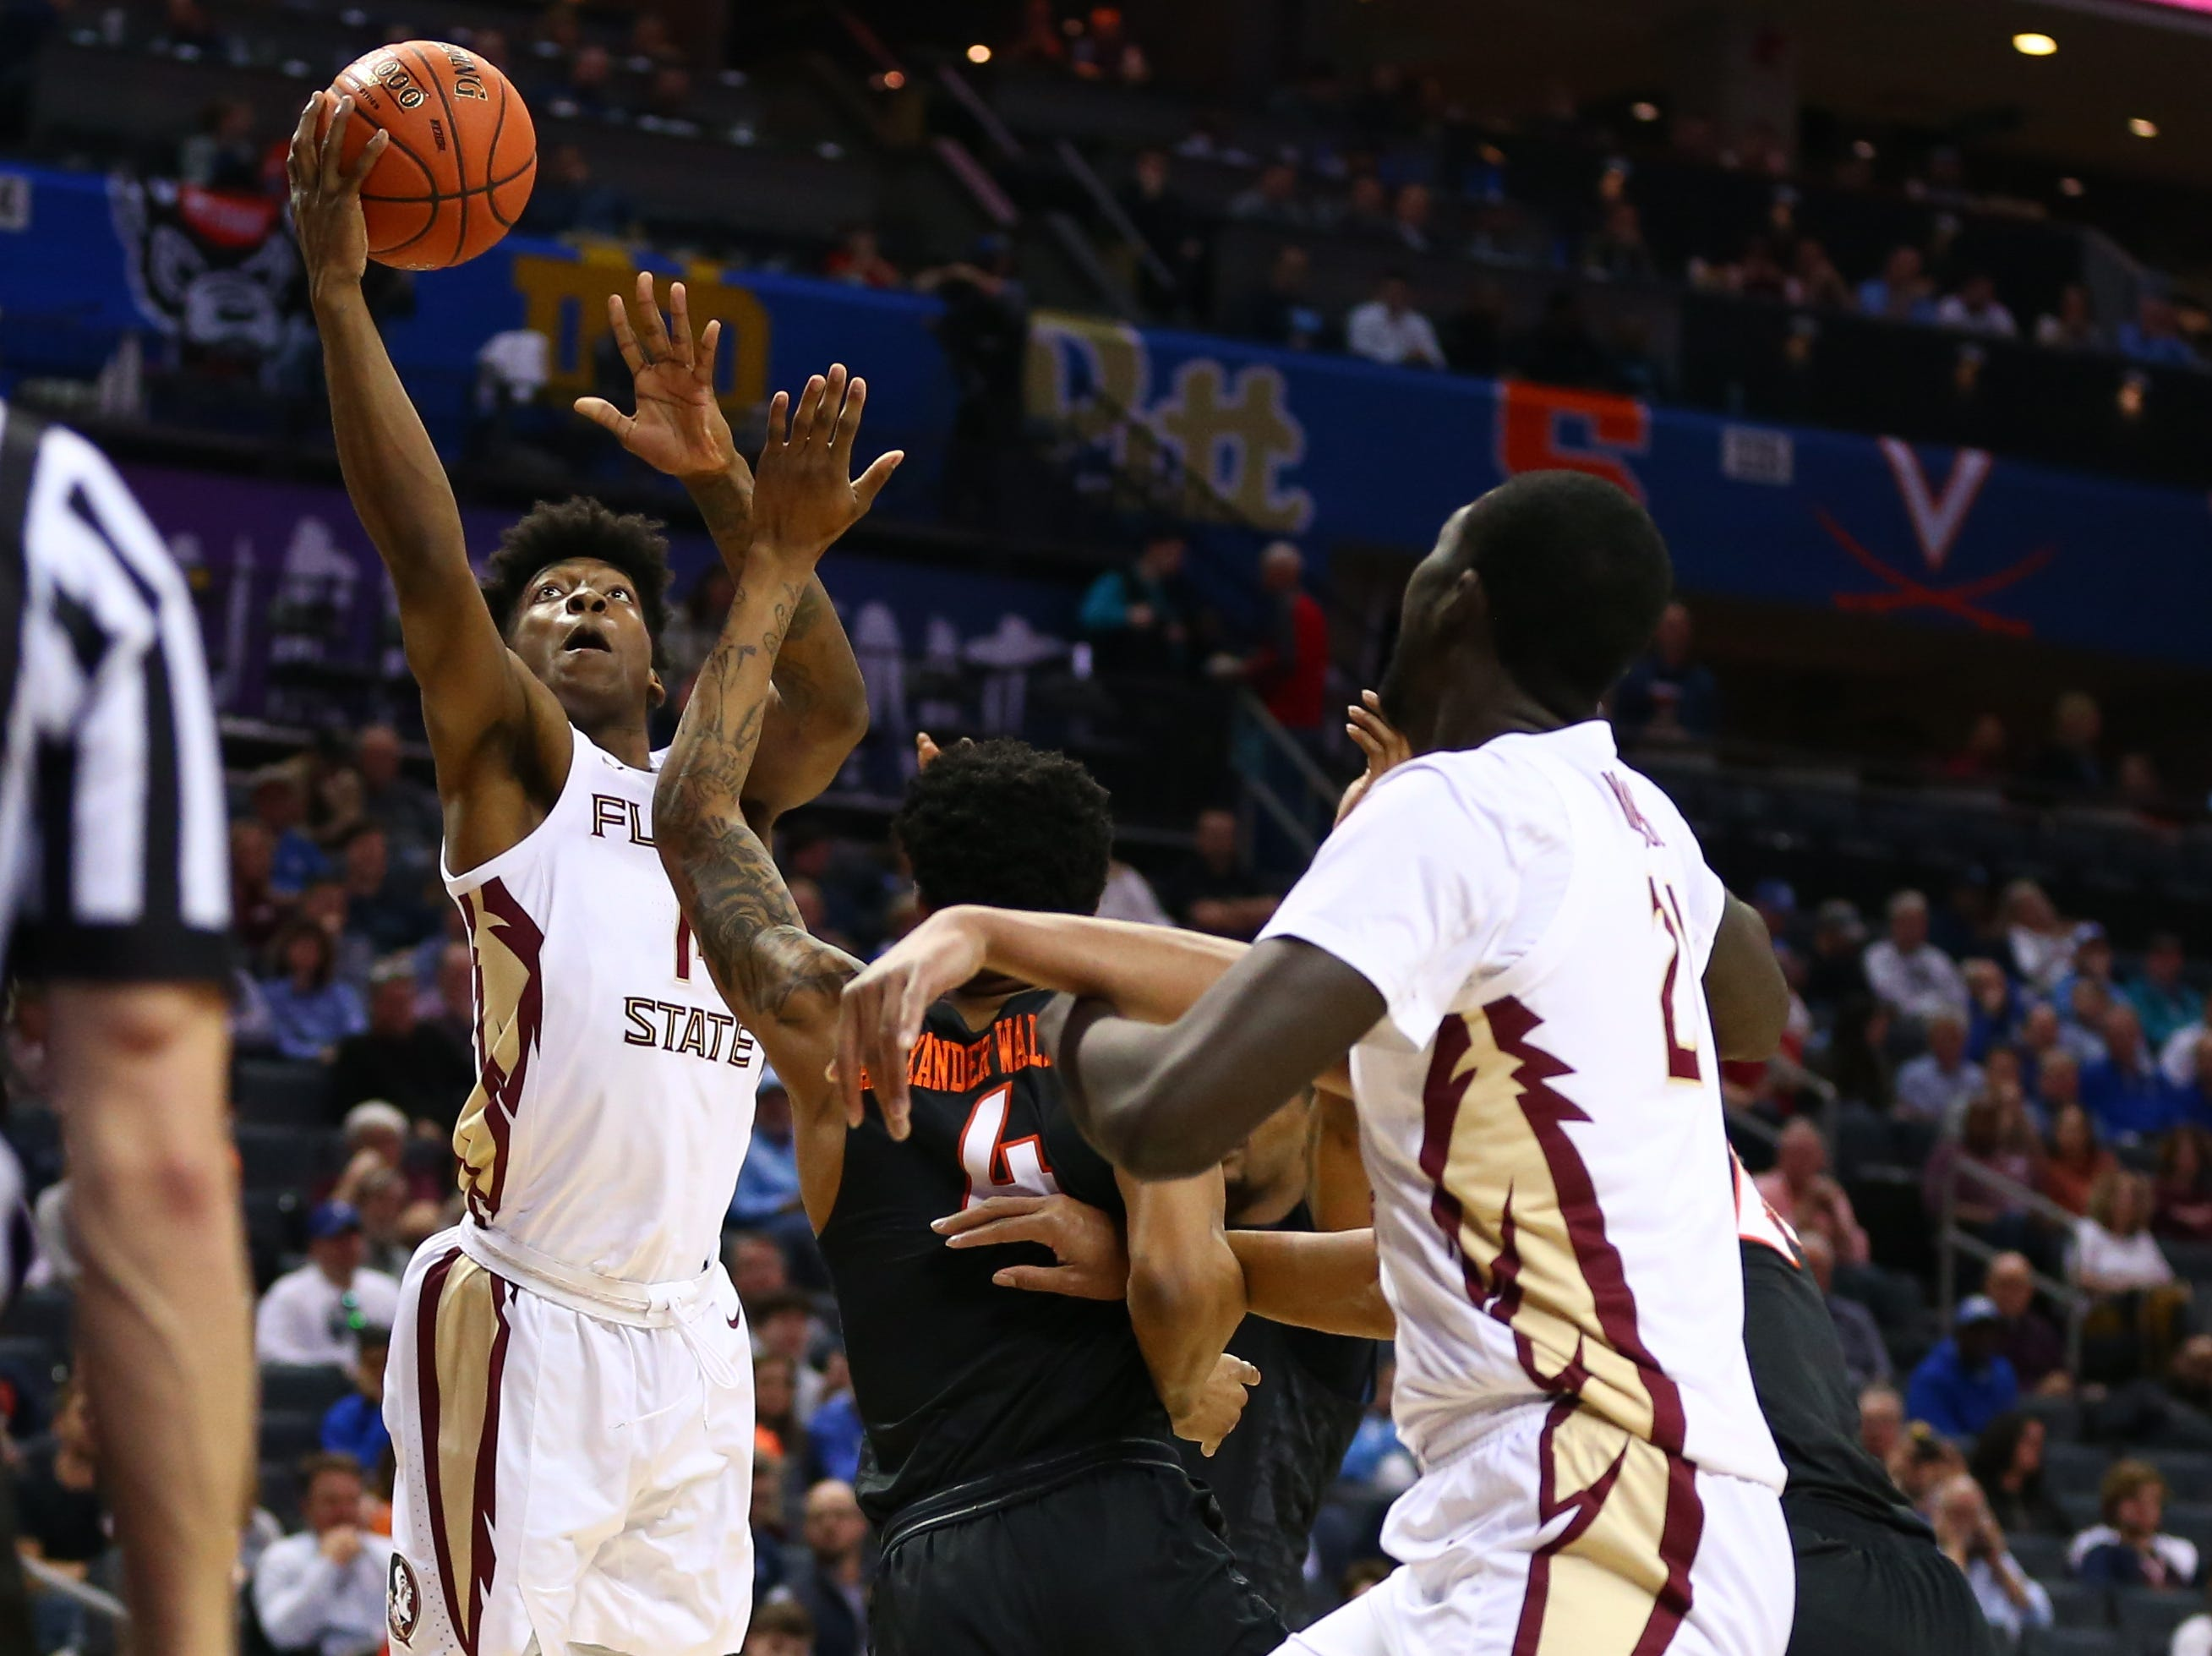 Mar 14, 2019; Charlotte, NC, USA; Florida State Seminoles guard Terance Mann (14) shoots the ball against Virginia Tech Hokies guard Nickeil Alexander-Walker (4) in the first half in the ACC conference tournament at Spectrum Center. Mandatory Credit: Jeremy Brevard-USA TODAY Sports